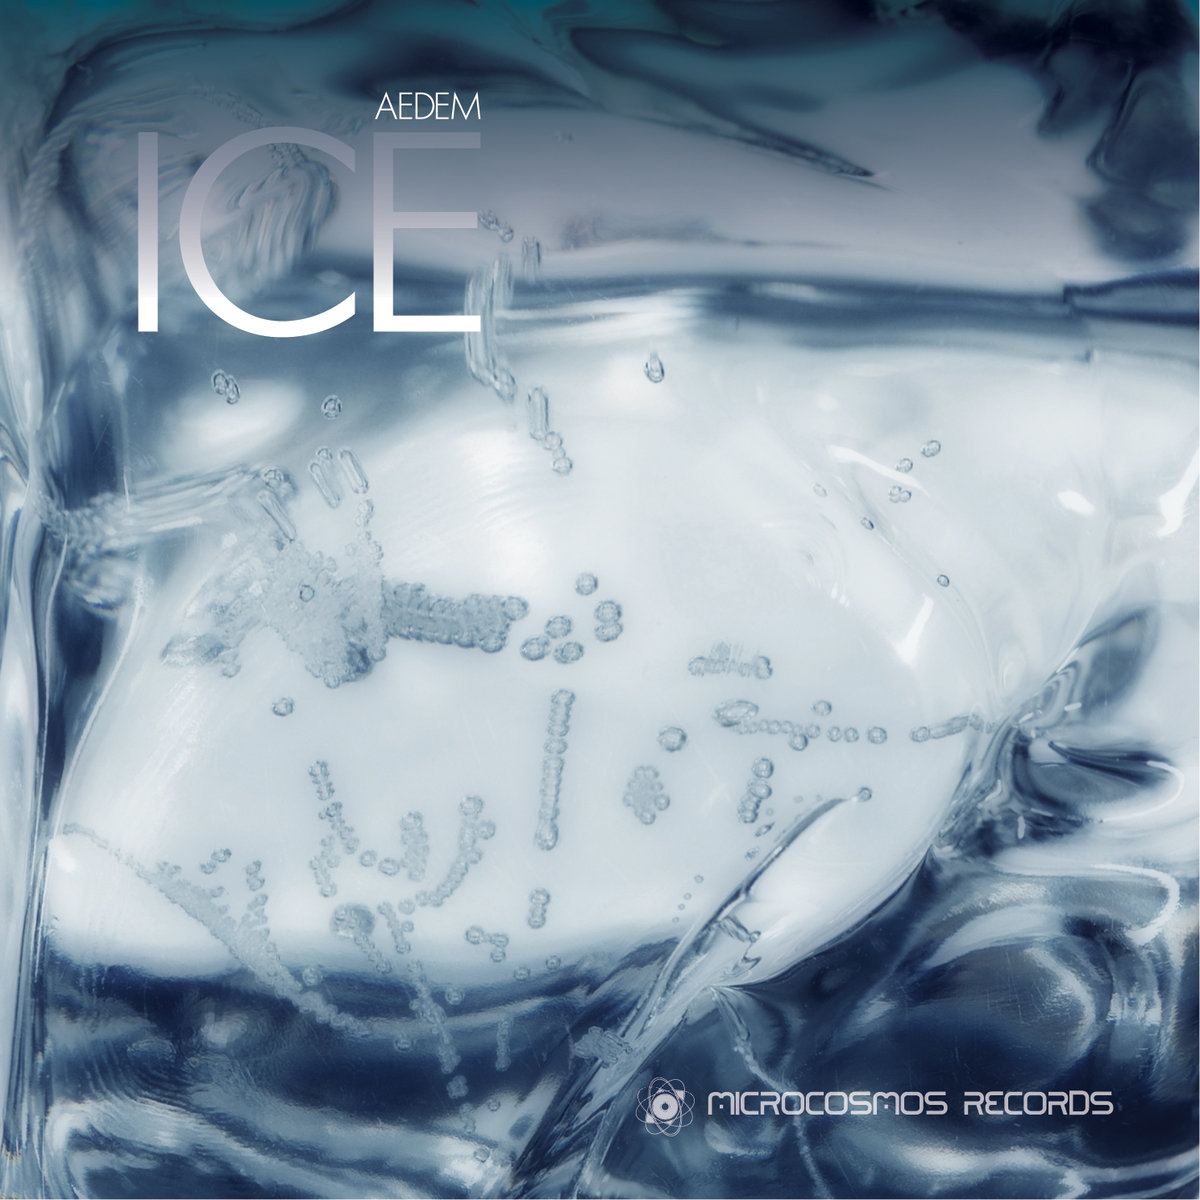 Aedem - Sleep Dream Dance Sing @ 'Ice' album (ambient, chill-out)